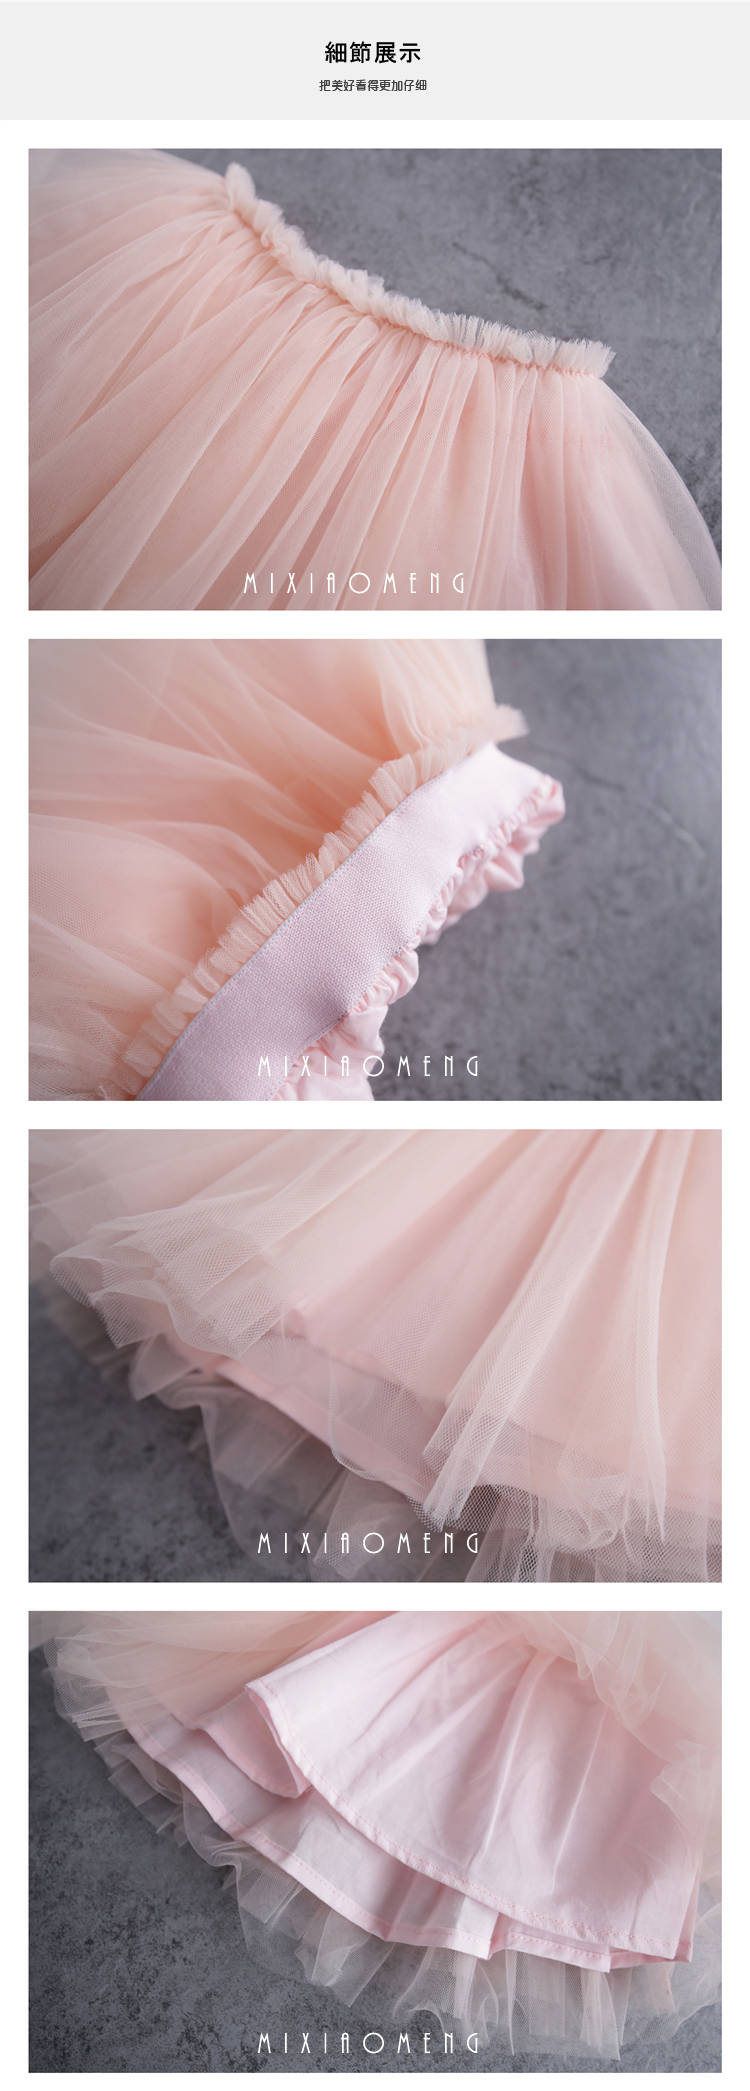 High Quality Wholesale Toddler Plain Ballet Tutu Skirts Kids Girl Tulle Dress White Pink Black Tutu Skirt For Girls